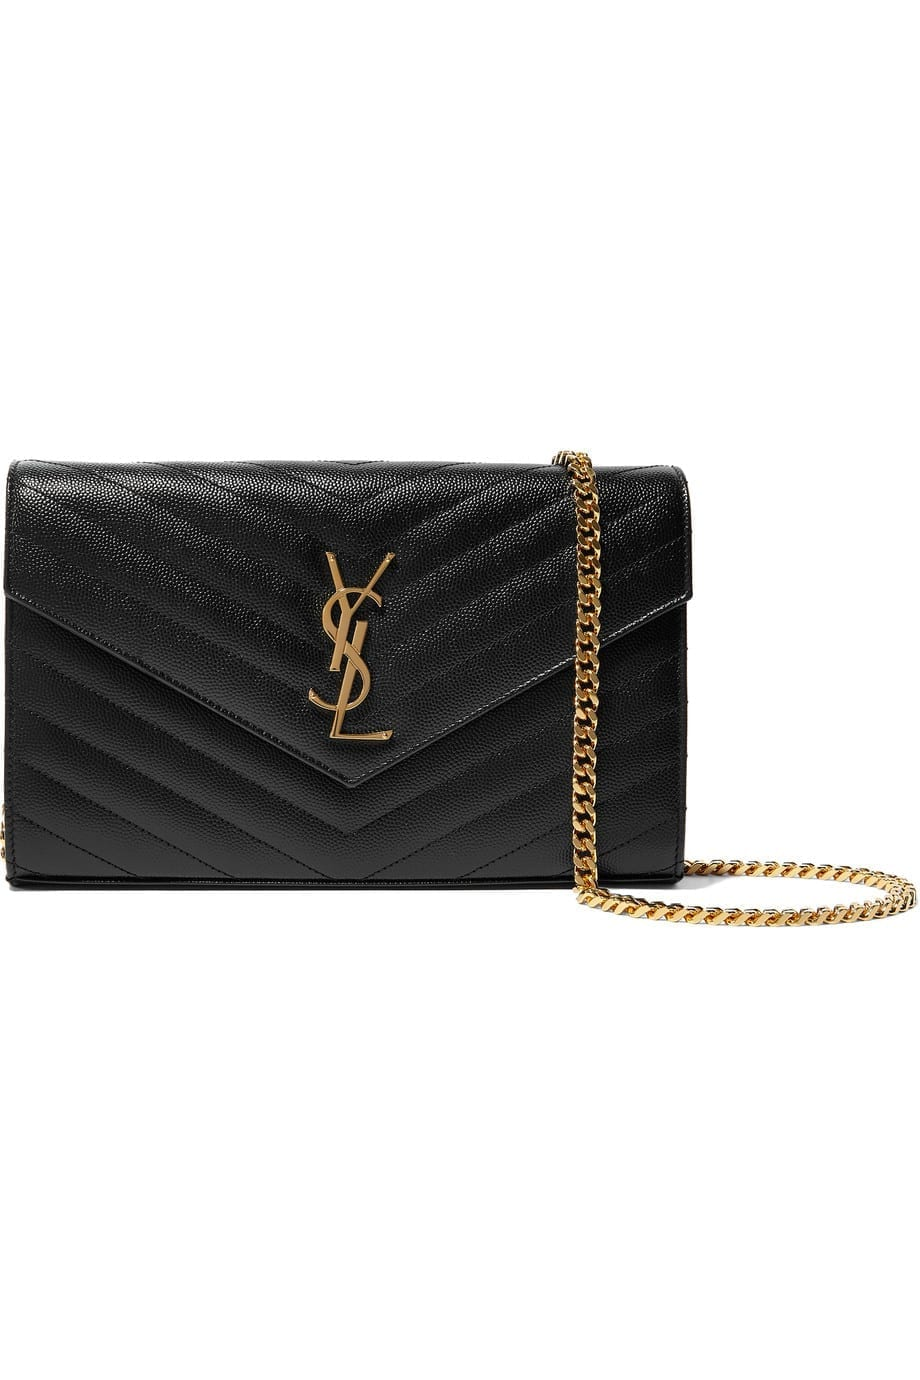 ysl bag 2016, le borse più belle 2016, it bag inverno 2016, regali di natale 2016, theladycracy.it, elisa bellino, fashion blog 2016, fashion blogger italiane 2016, fashion blogger più influenti 2016, blogger moda 2016, fashion blogger famose 2016,